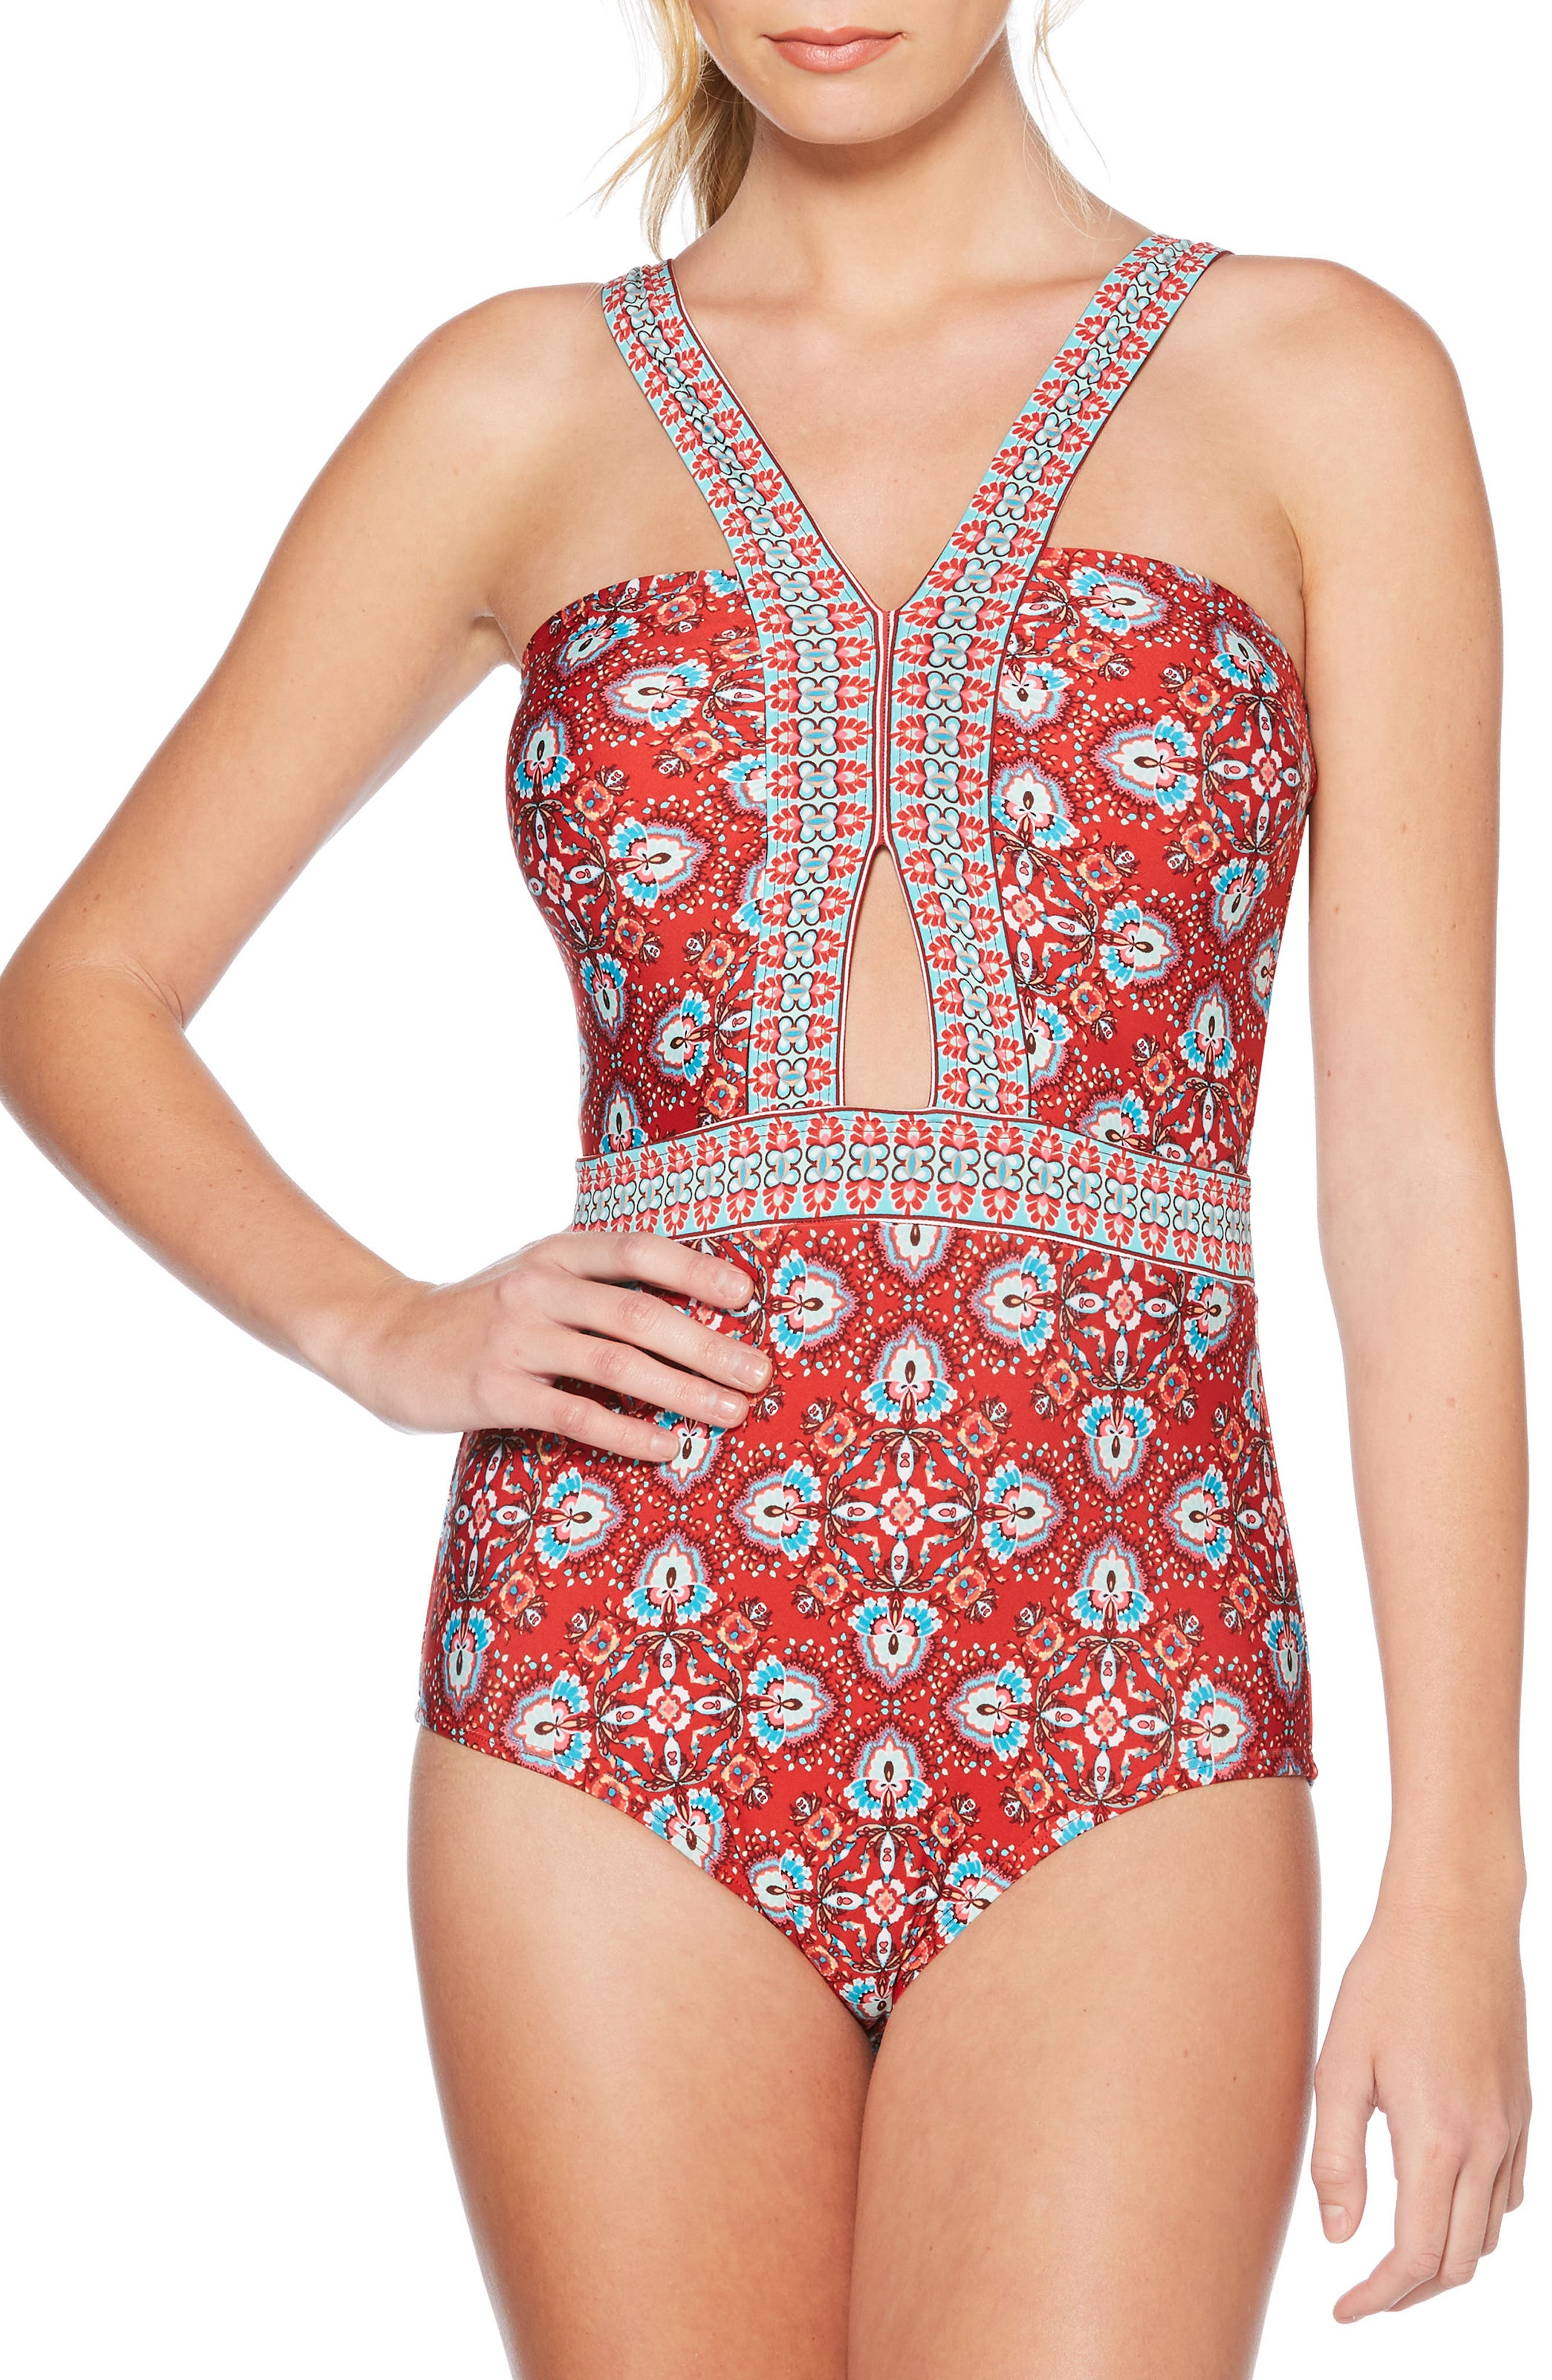 Butterfly Twin Cutout One-Piece Swimsuit,                             Main thumbnail 2, color,